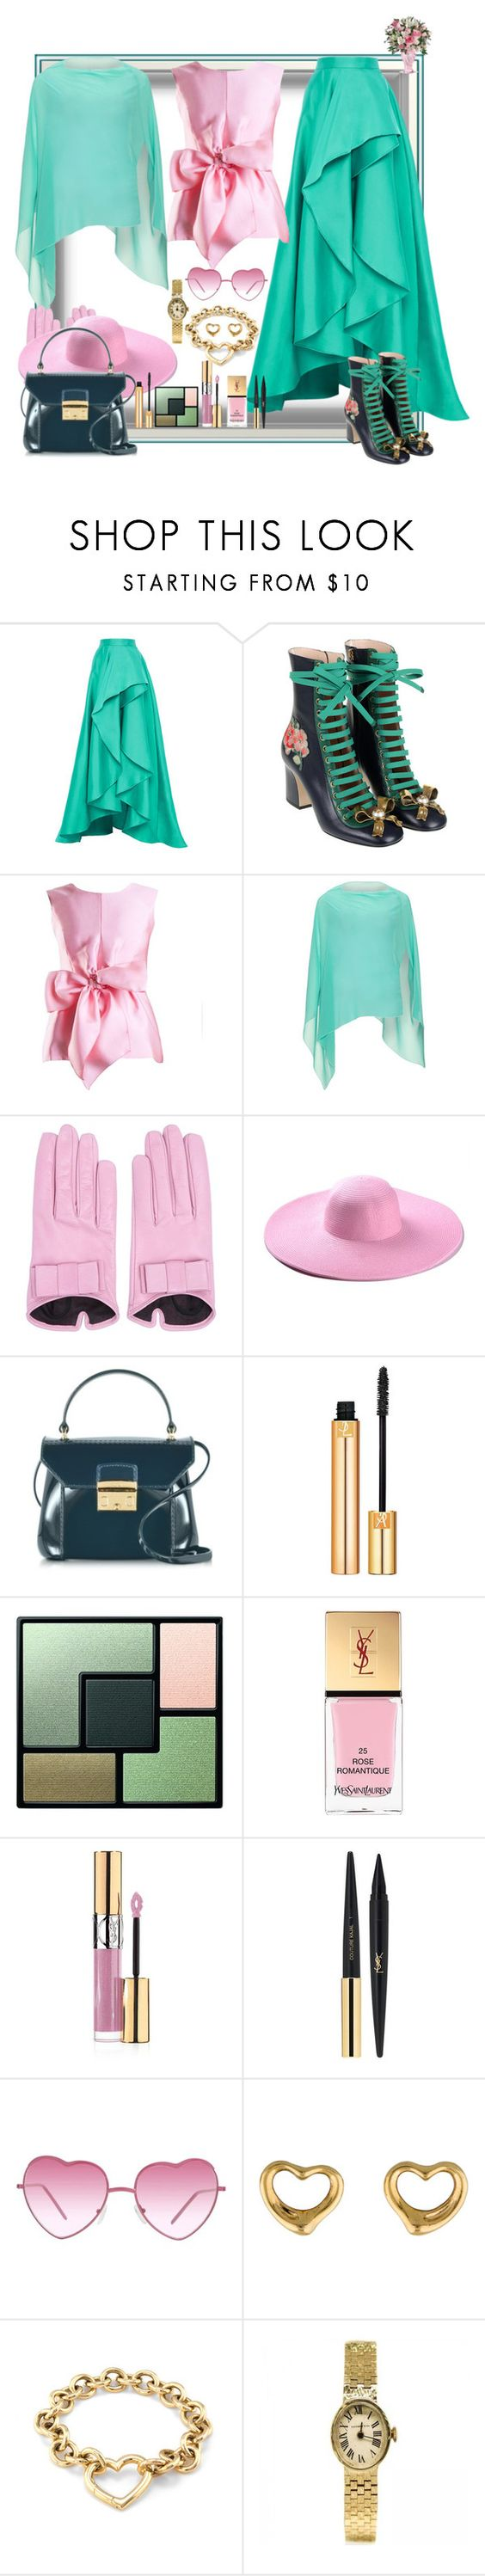 """""""Happy Mother's Day!"""" by ritva-harjula on Polyvore featuring Monique Lhuillier, Olympia Le-Tan, Yanny London, Steilmann, Mario Portolano, Furla, Yves Saint Laurent, Almost Famous and Tiffany & Co."""